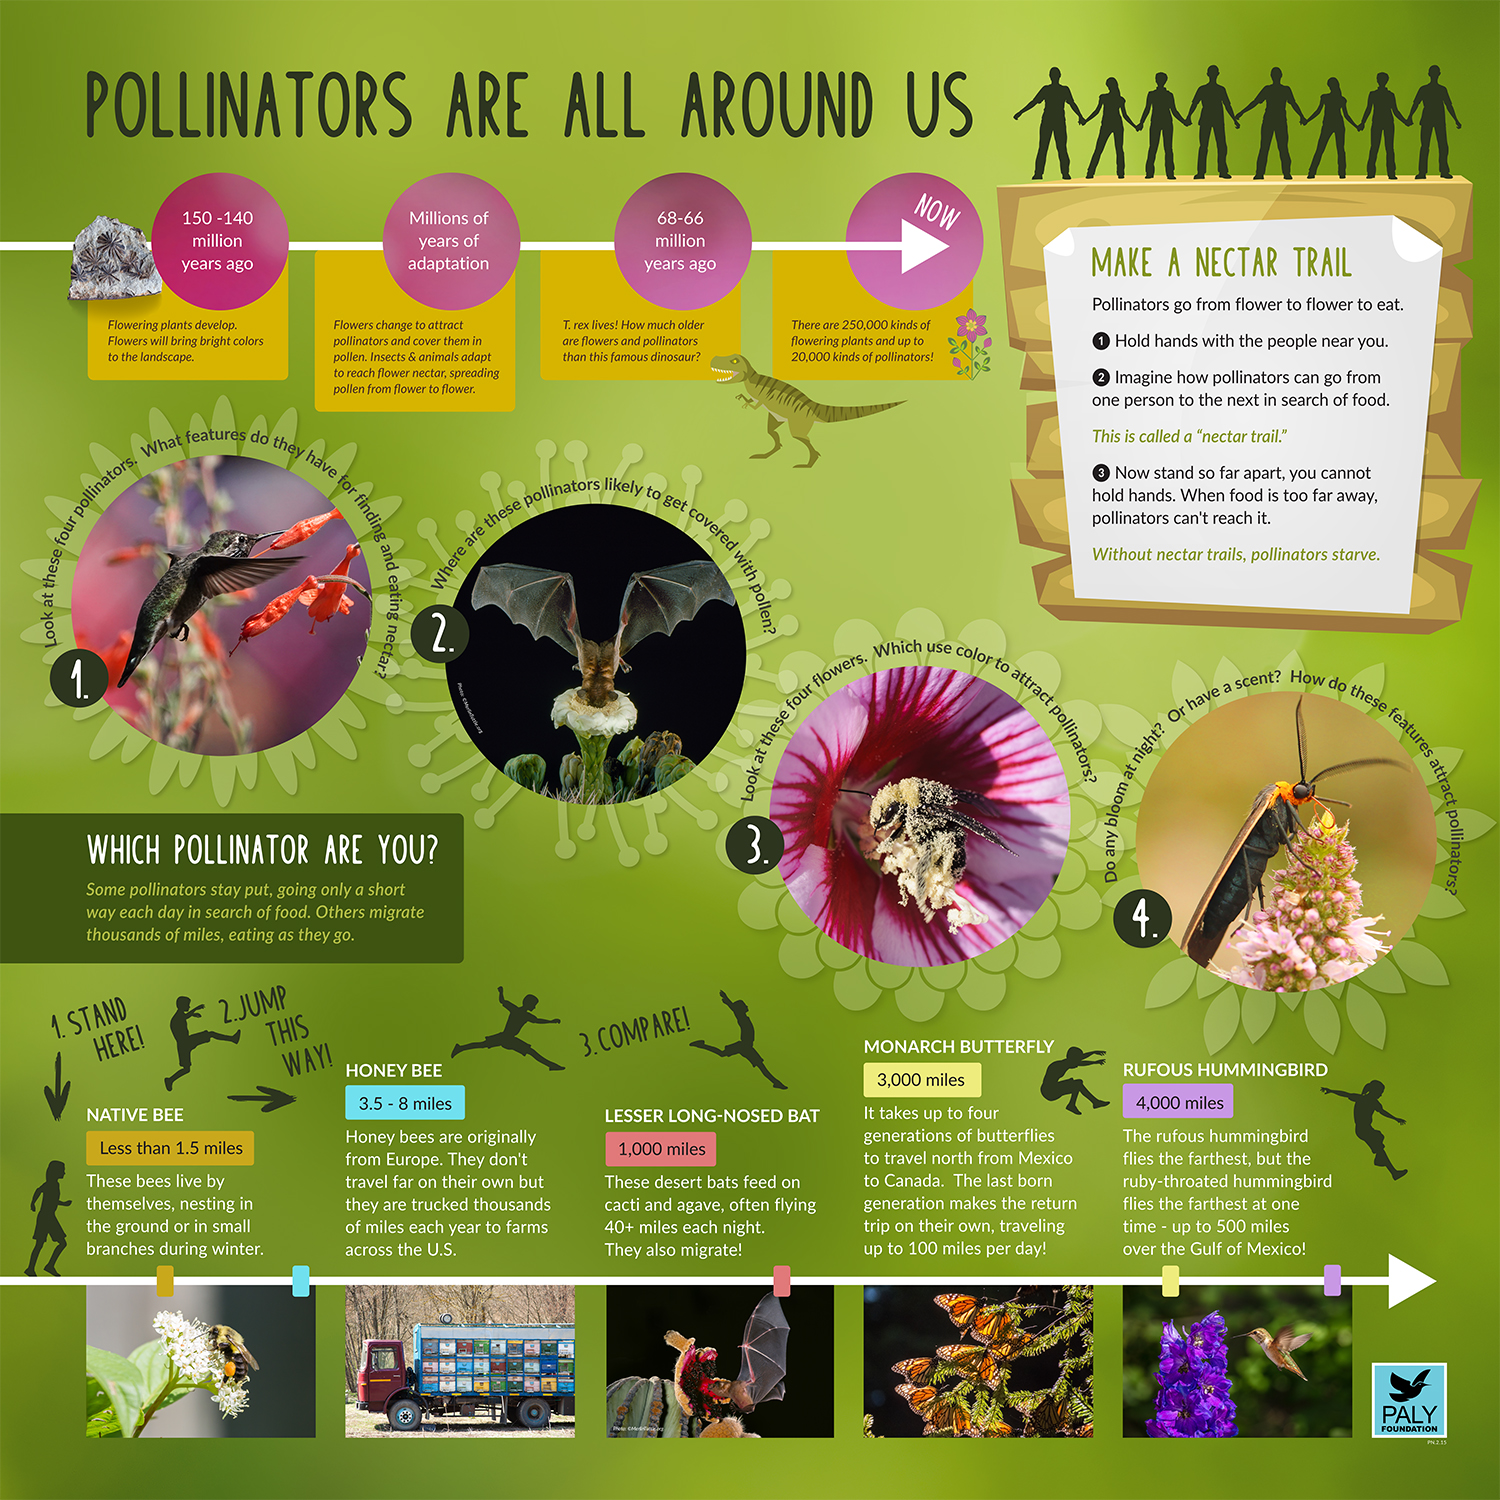 Pollinators_Fast_Facts_Paly_Foundation_Web.jpg